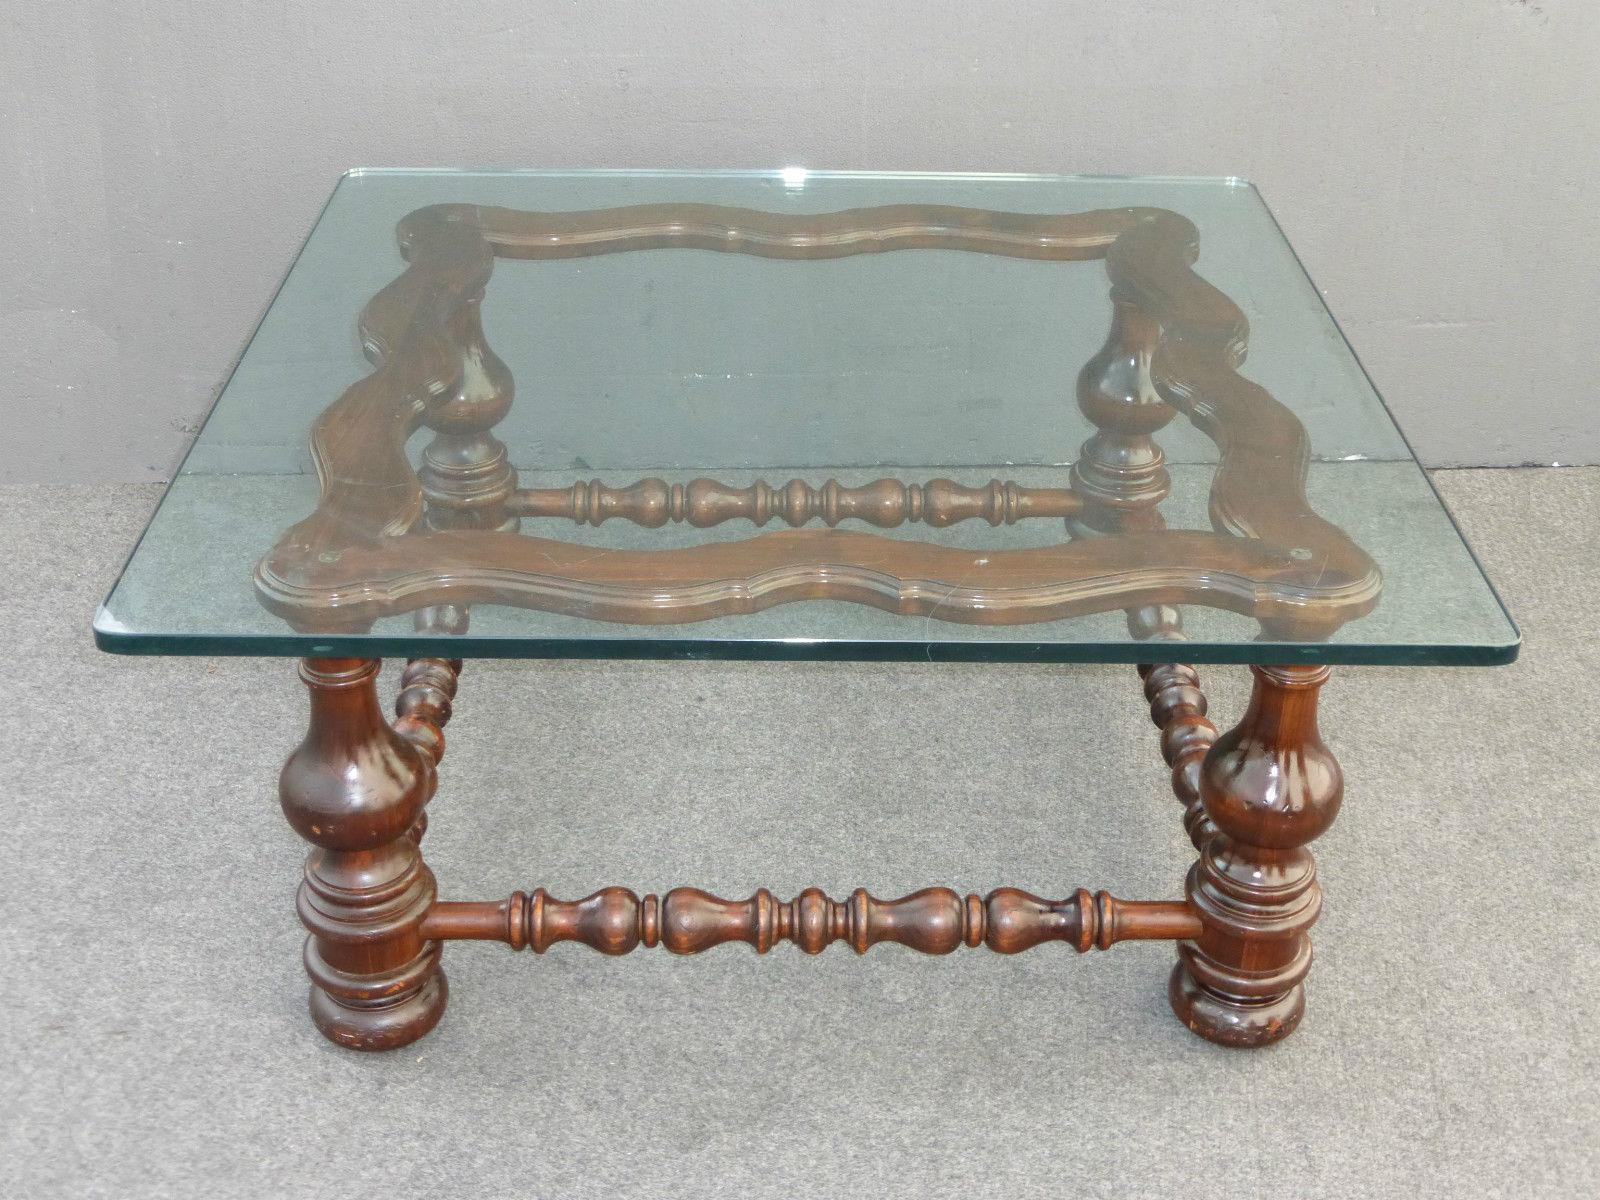 Vintage Spanish Style Glass Top Turned Wood Coffee Table   Image 2 Of 11